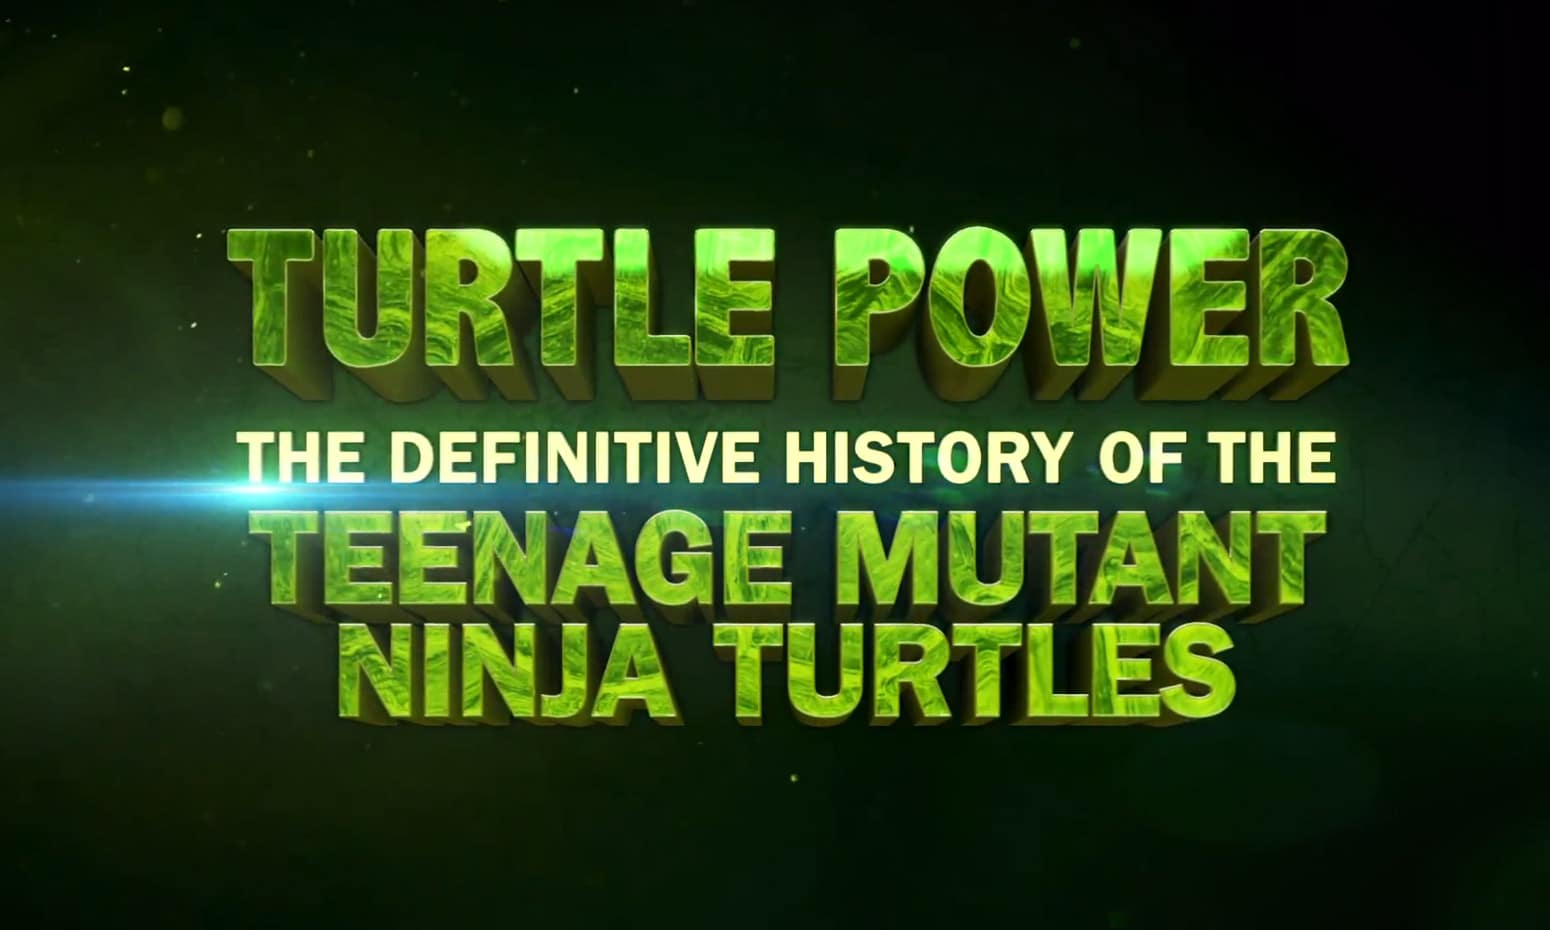 Turtle Power TMNT Documentary from Paramount